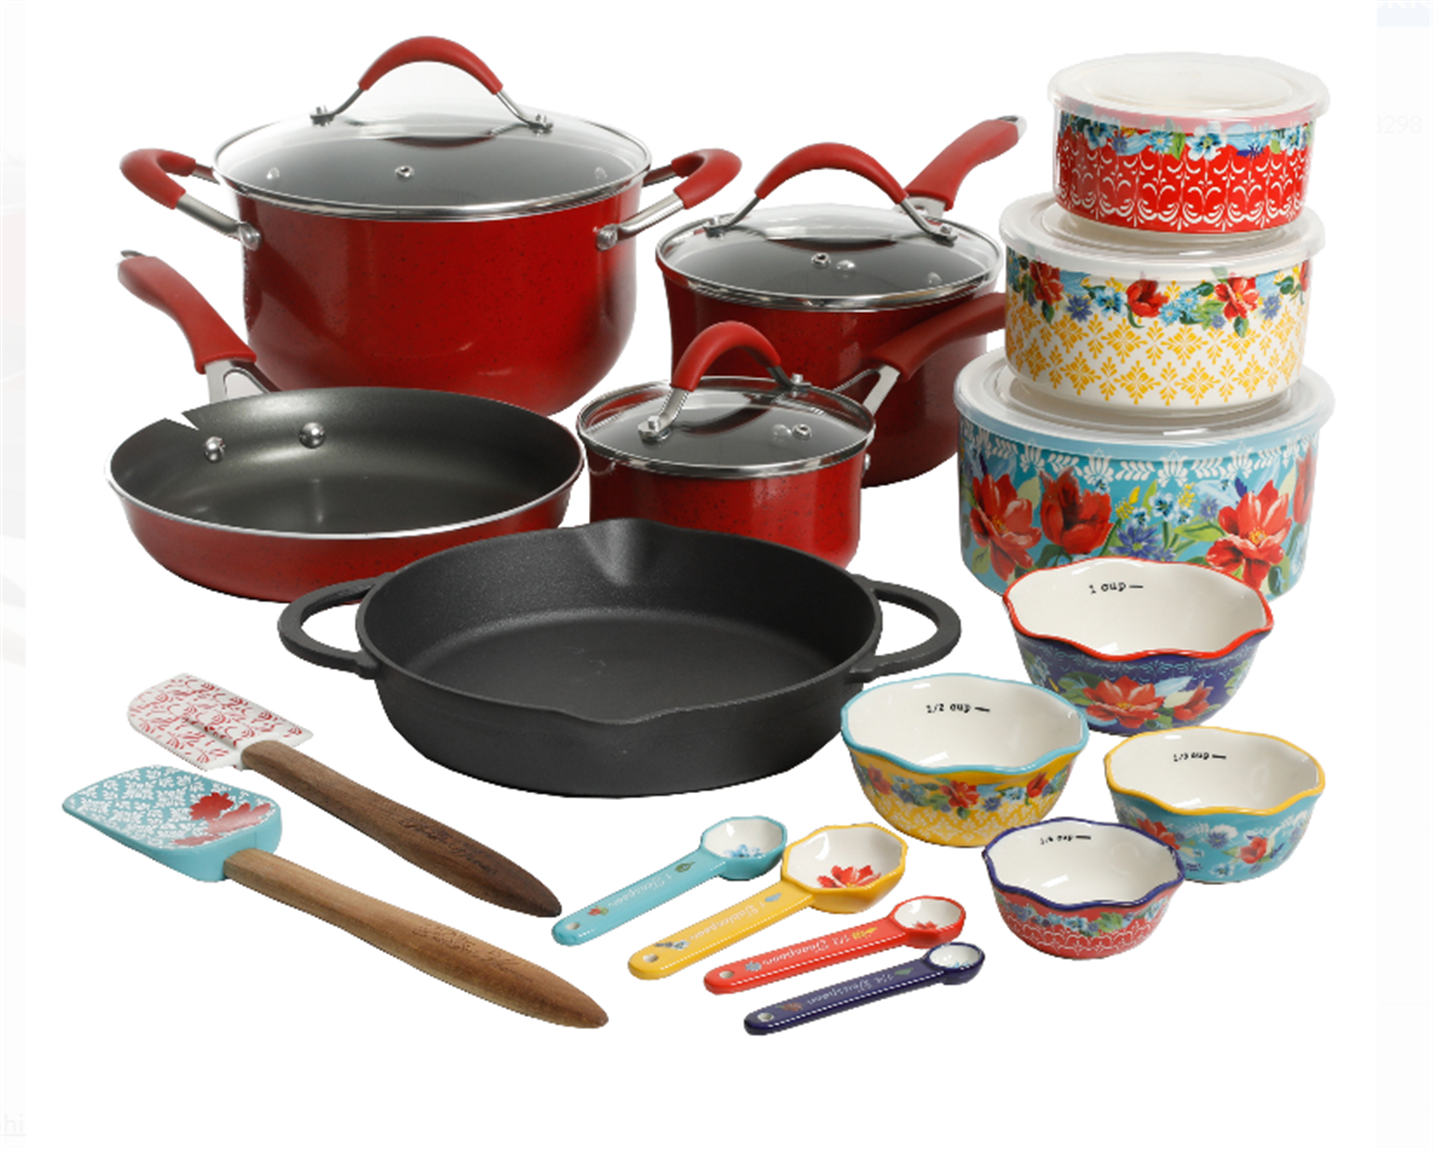 The Pioneer Woman Frontier Speckle 24-Piece Cookware & Food Storage Combo Set, Red Only $59.99, Reg $99.00 + Free Shipping!